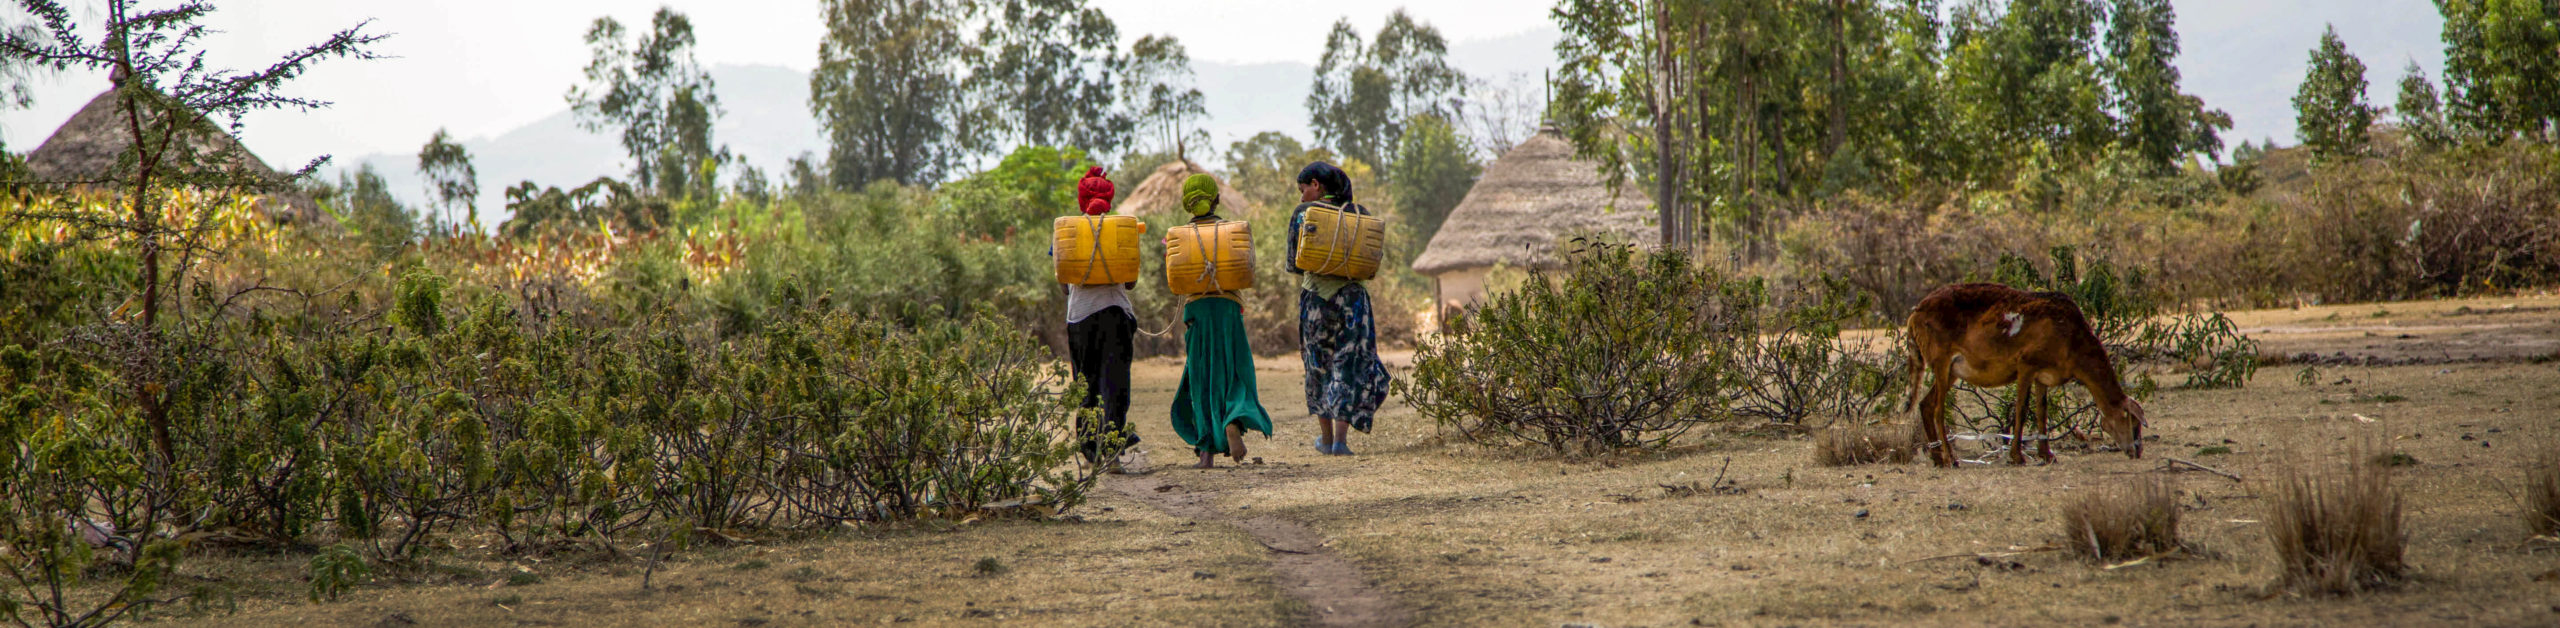 Women carry water back to their homes in Wolgeba village in Halaba Zone, Ethiopia. Like many villages in the Zone, Wolgeba is known for its water shortages. UNICEF supports the local government to provide water to the rural communities. © UNICEF Ethiopia/ 2015/Tesfaye